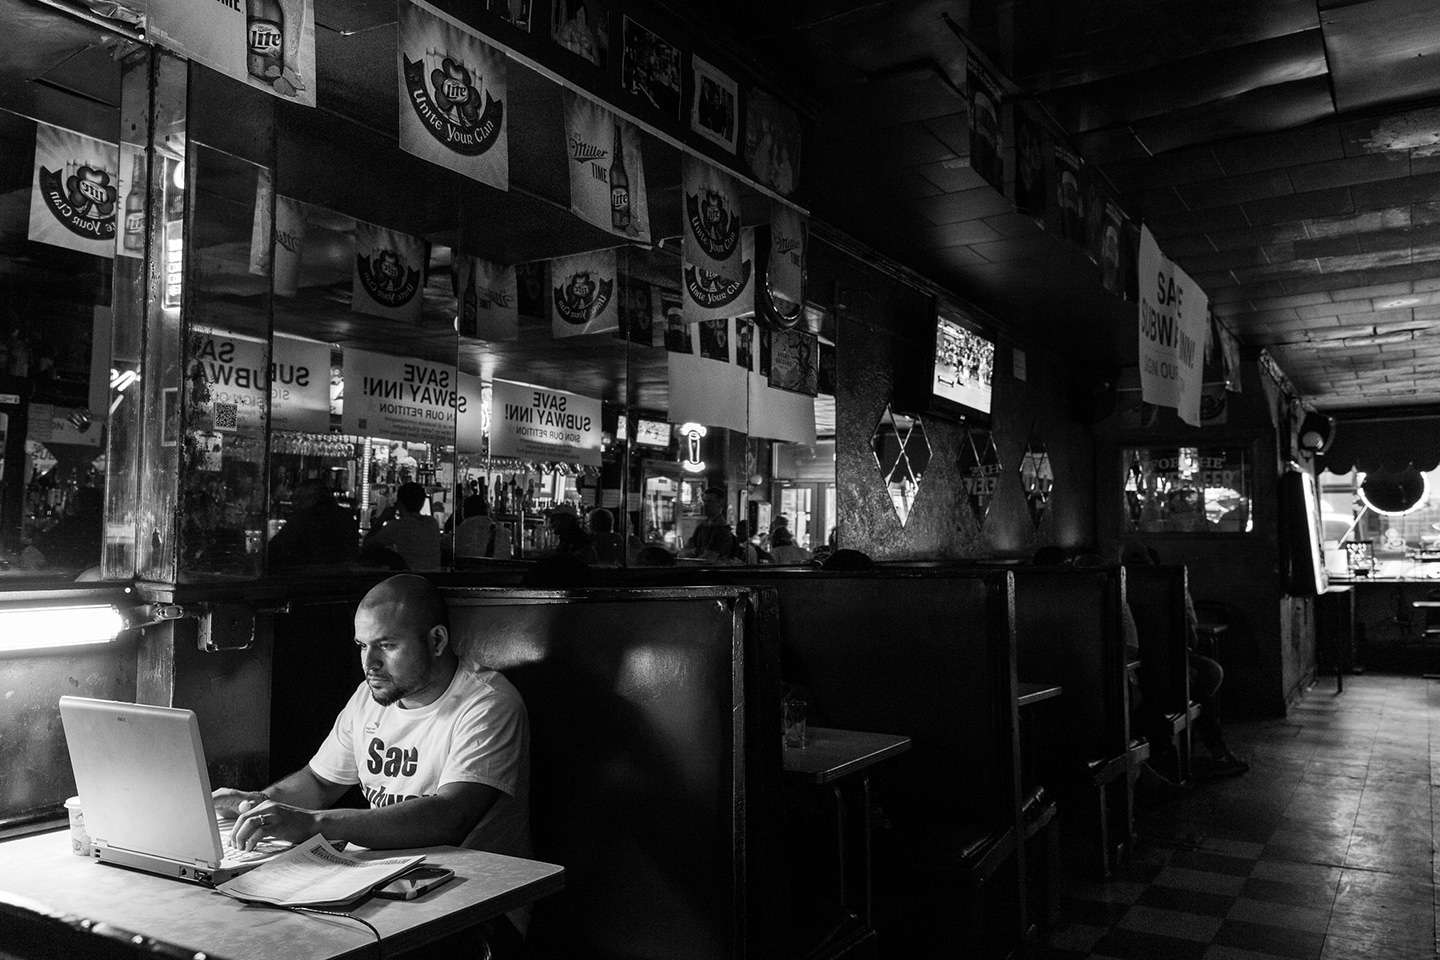 Owner Steve Salinas - Disappearing New York - Subway Bar Inn after 75 years had to move to make room for another luxury high rise apartment building. : Disappearing NY - Subway Bar Inn : NY - Portrait Photographer Video, Architectural, Corporate Editorial Location Photography